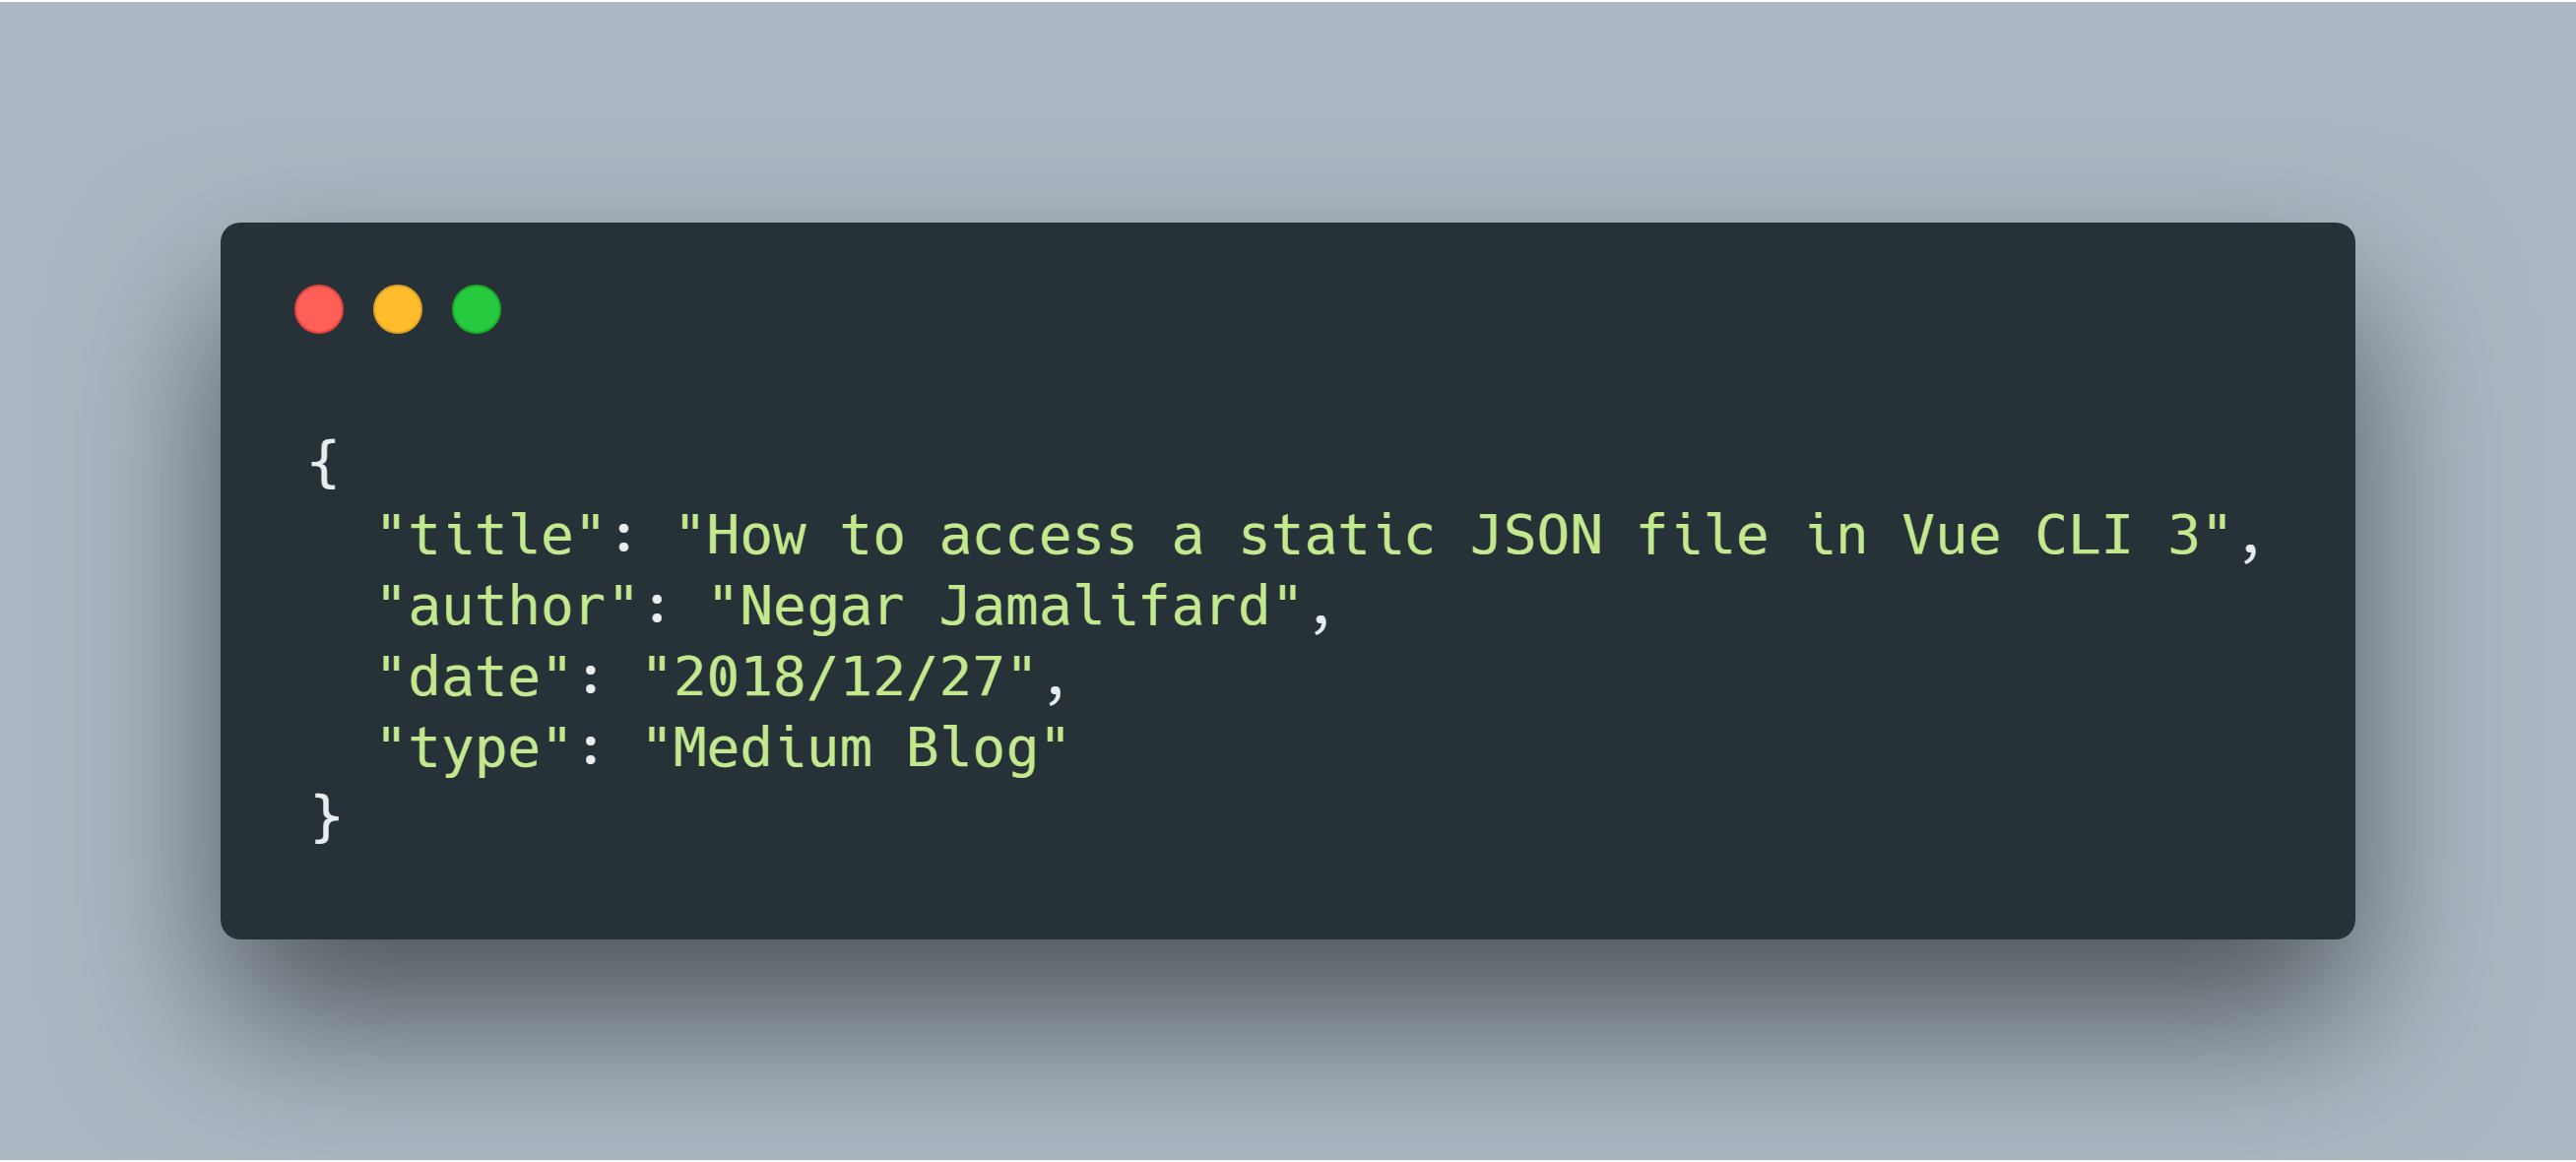 How to access a static JSON file in Vue CLI 3? - Negar